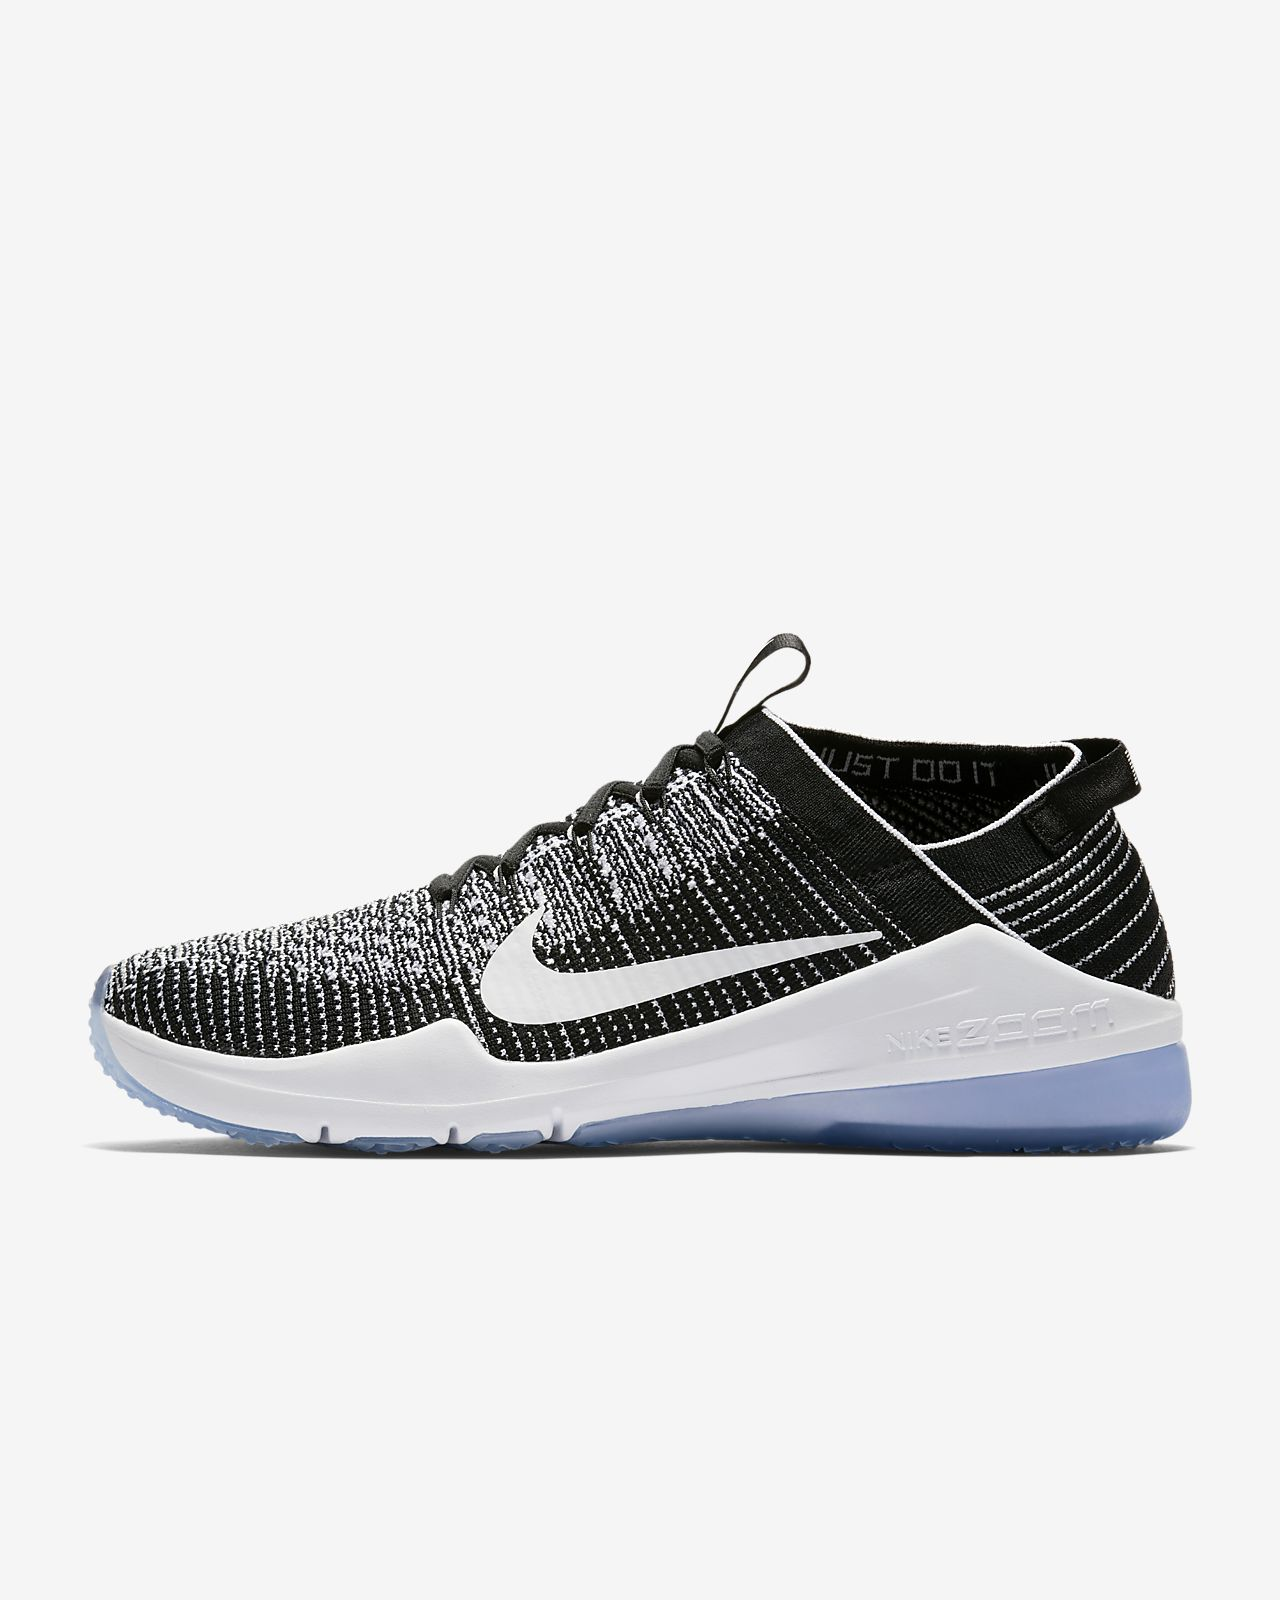 Chaussure Fearless Zoom Training Nike De Fitness Et Boxe Air qq8APrT